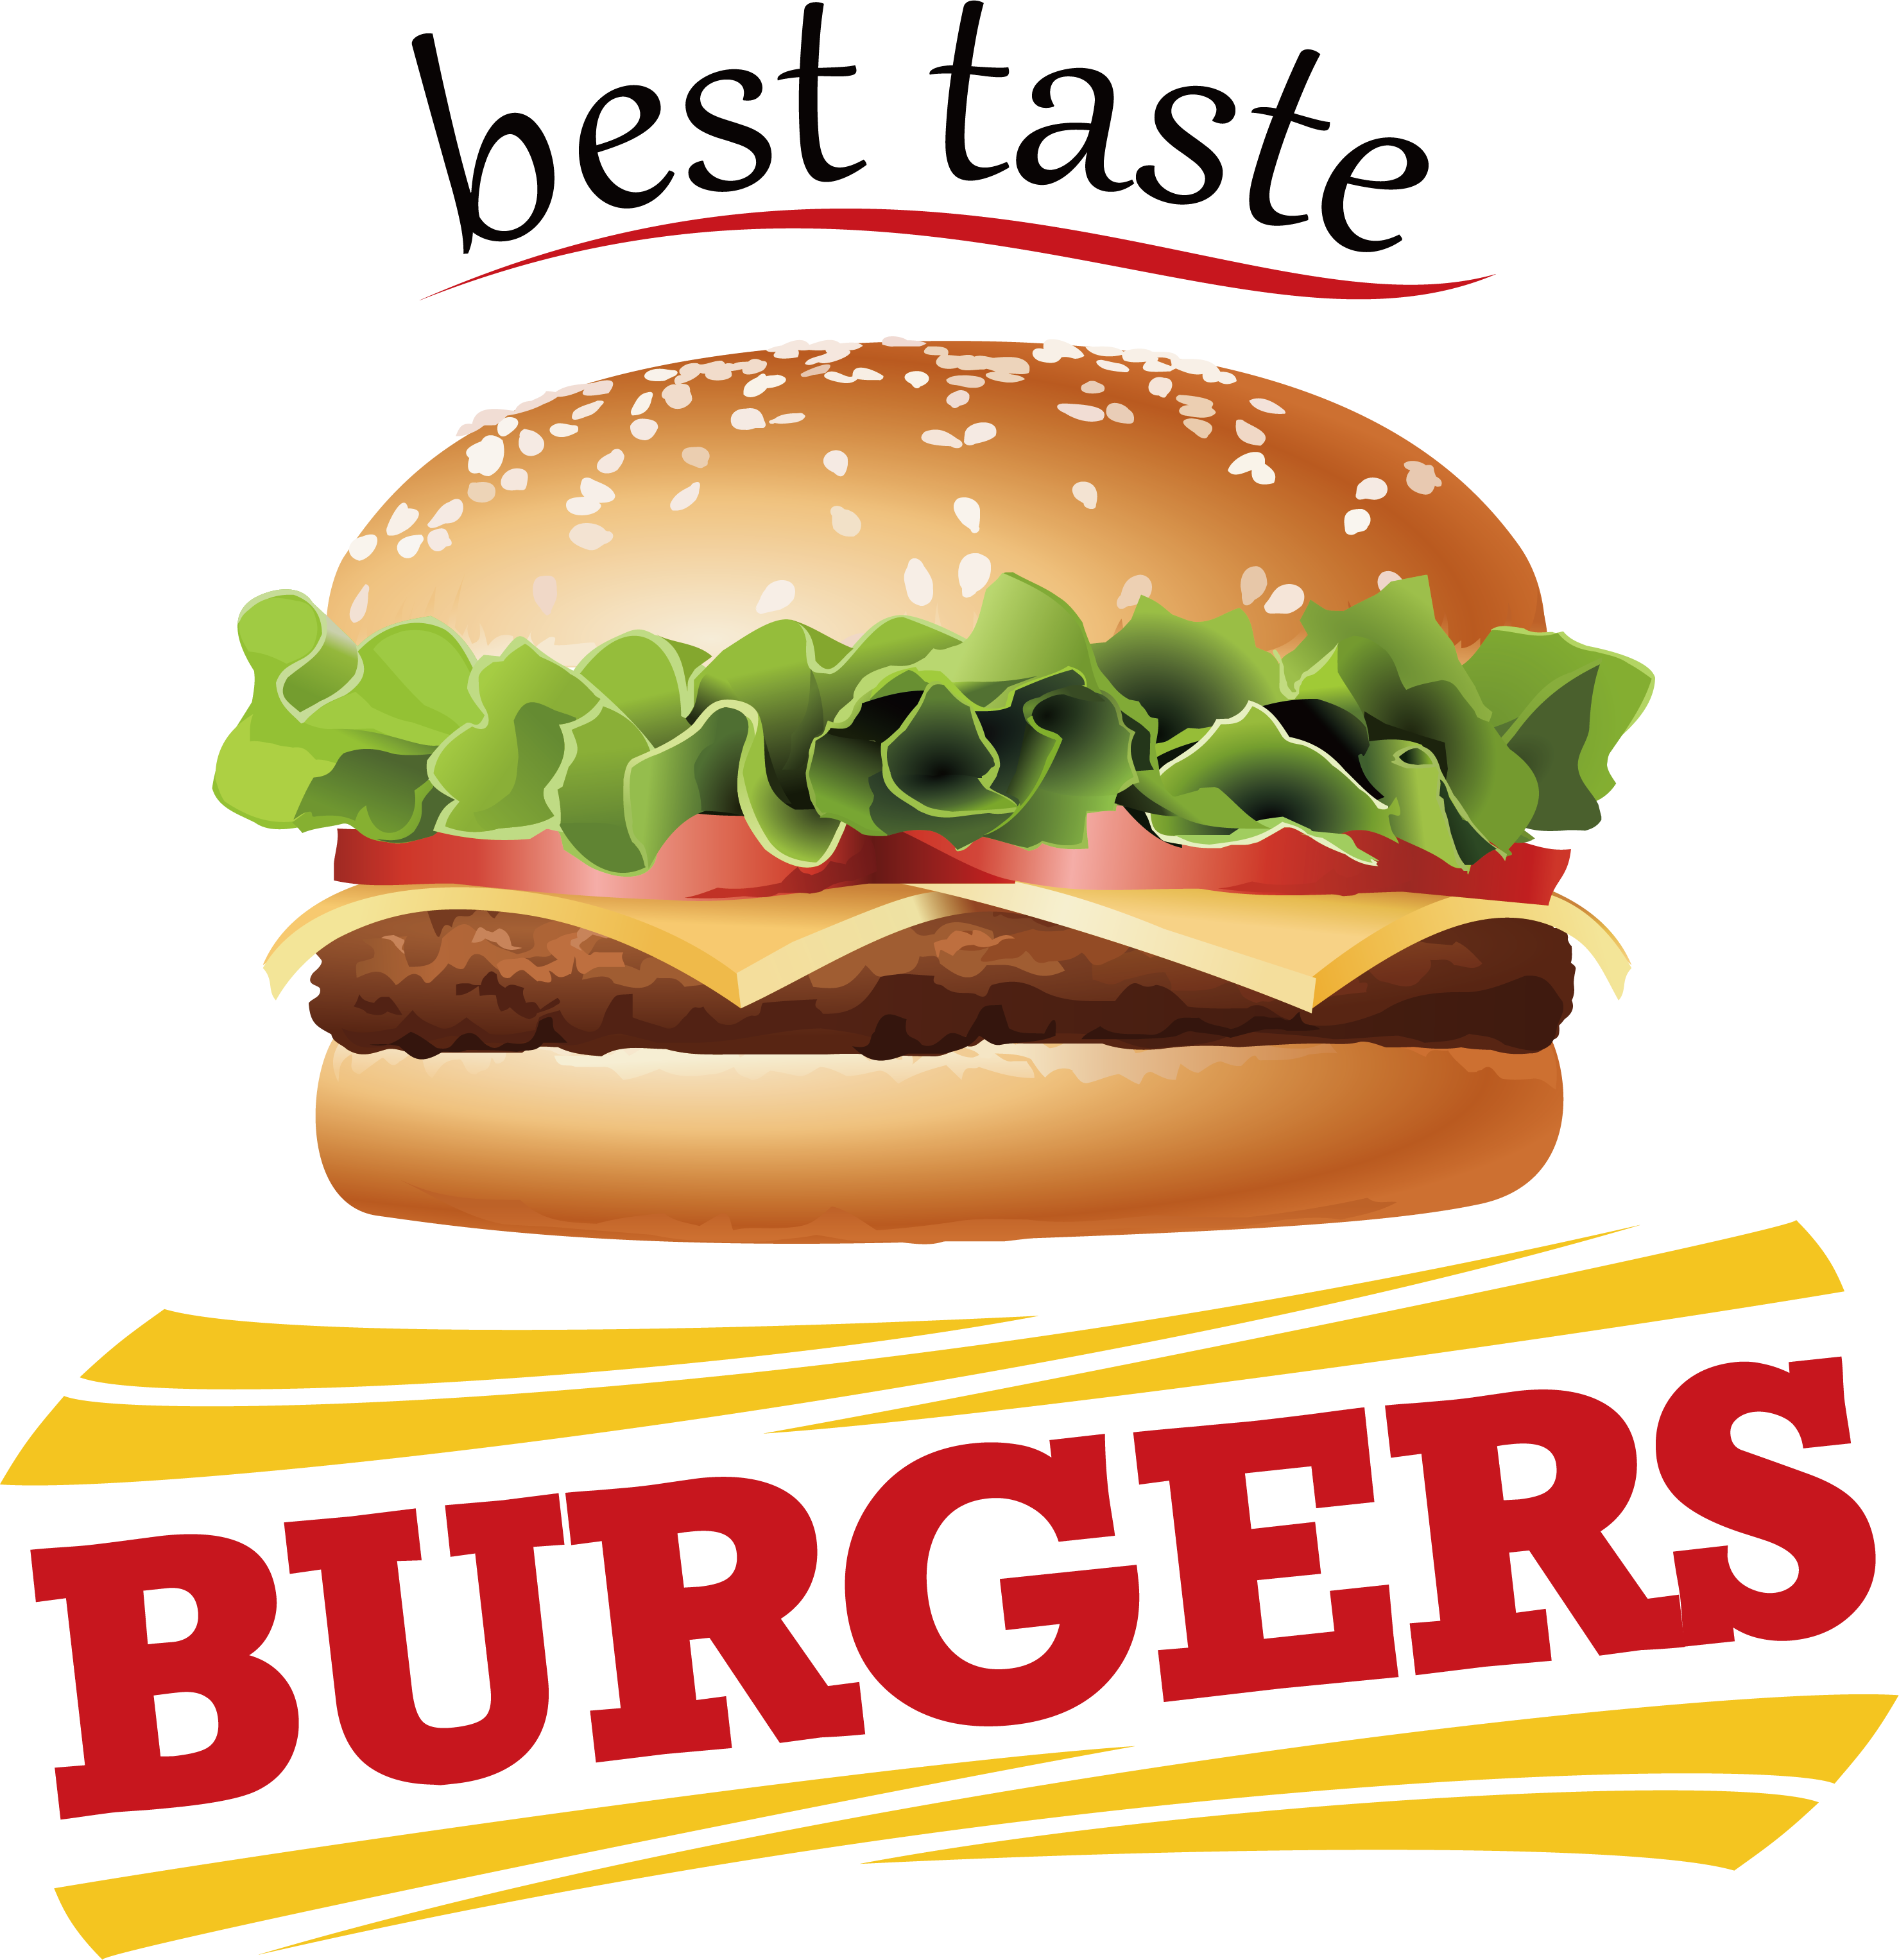 King Hamburger Food Fries Dog French Burger PNG Image